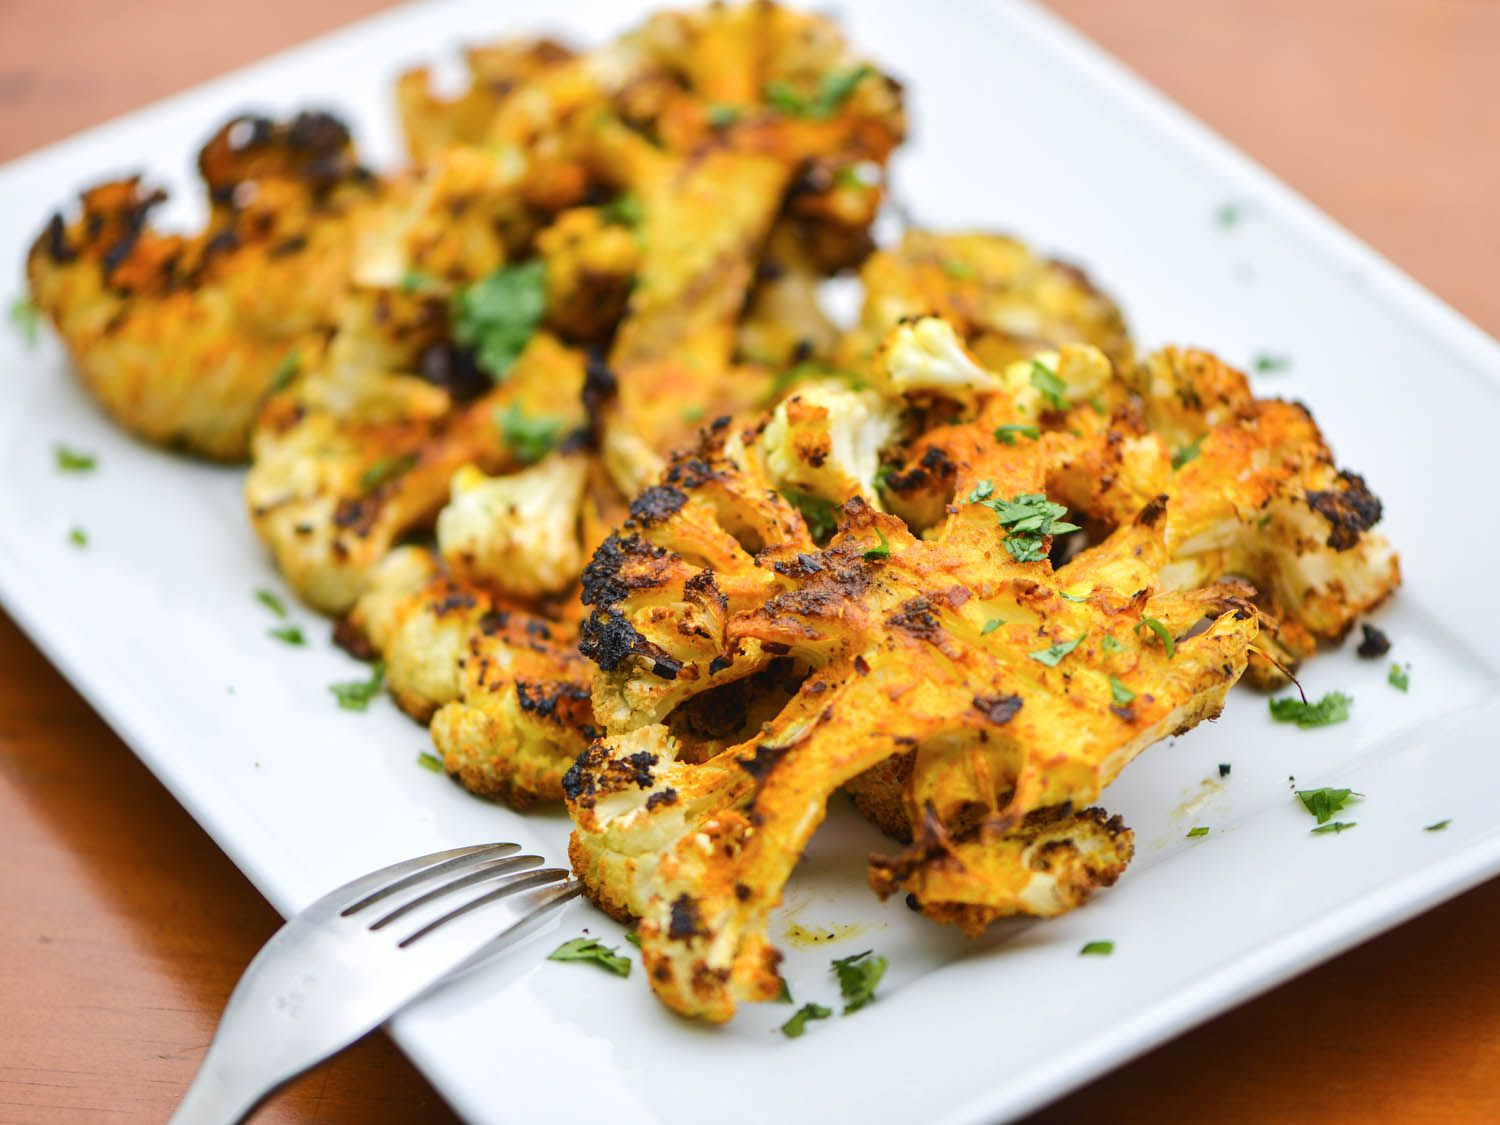 Grilled spiced cauliflower sprinkled with chopped herbs, on a white serving platter